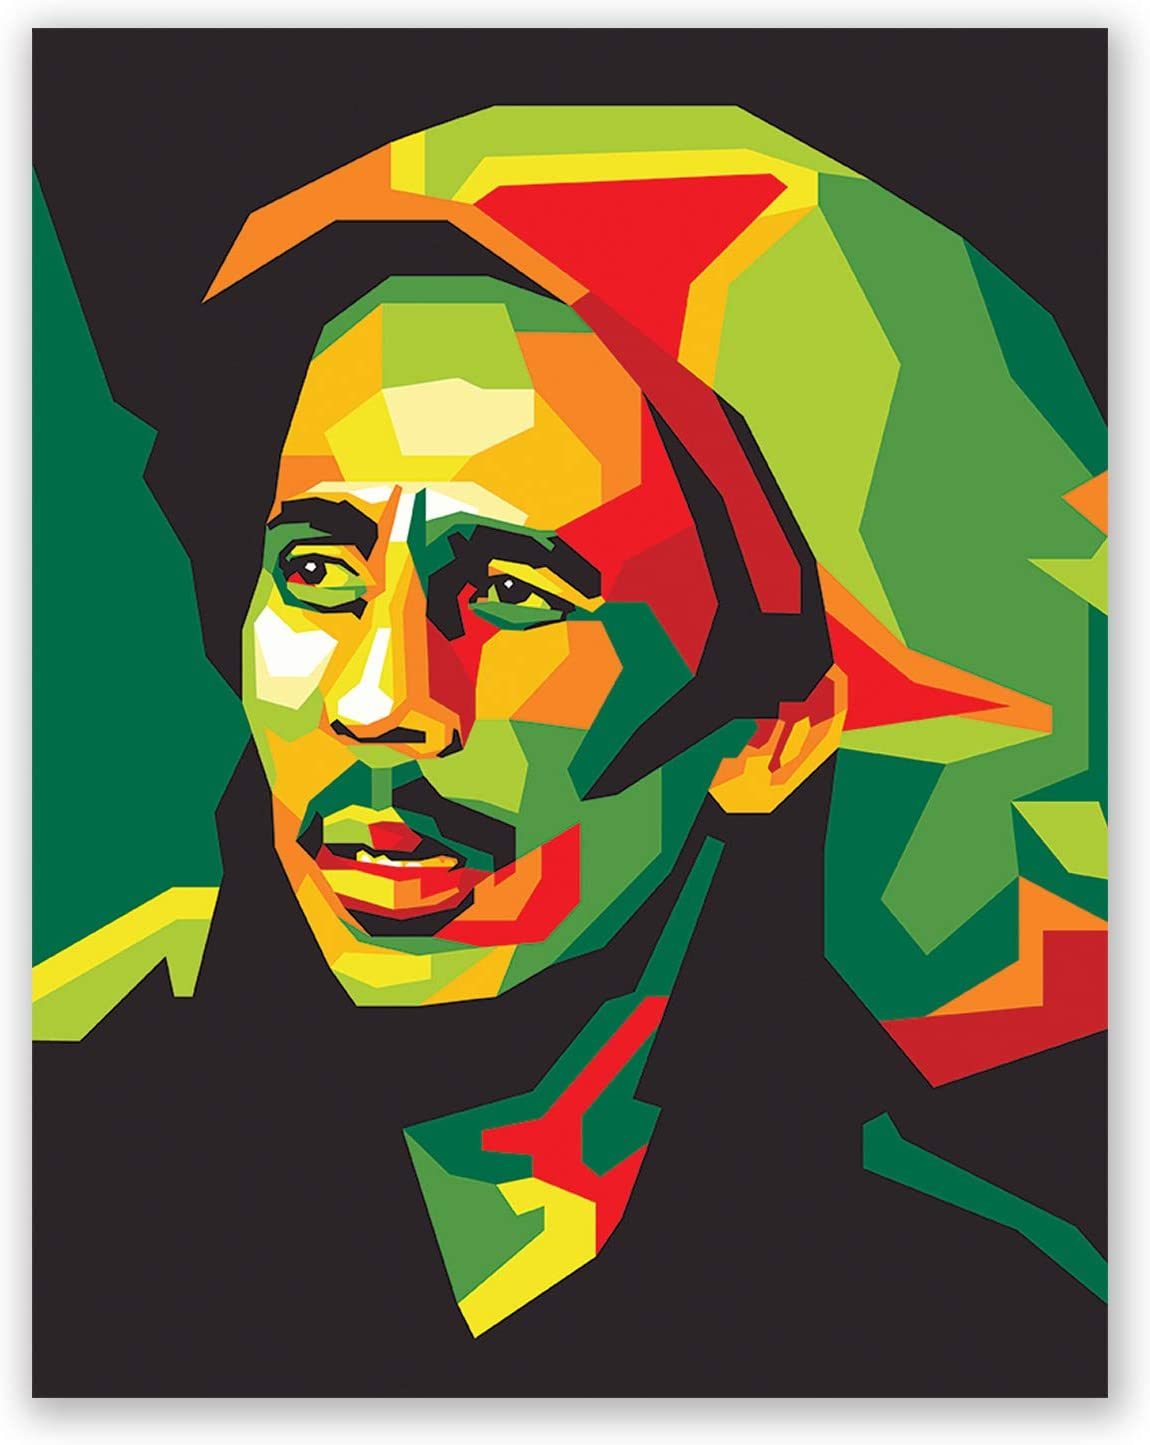 Bob Marley Poster - Pop Art Inspired Art - Bedroom Wall Poster - Living Room Decor - Gift for Men Women (11x14)